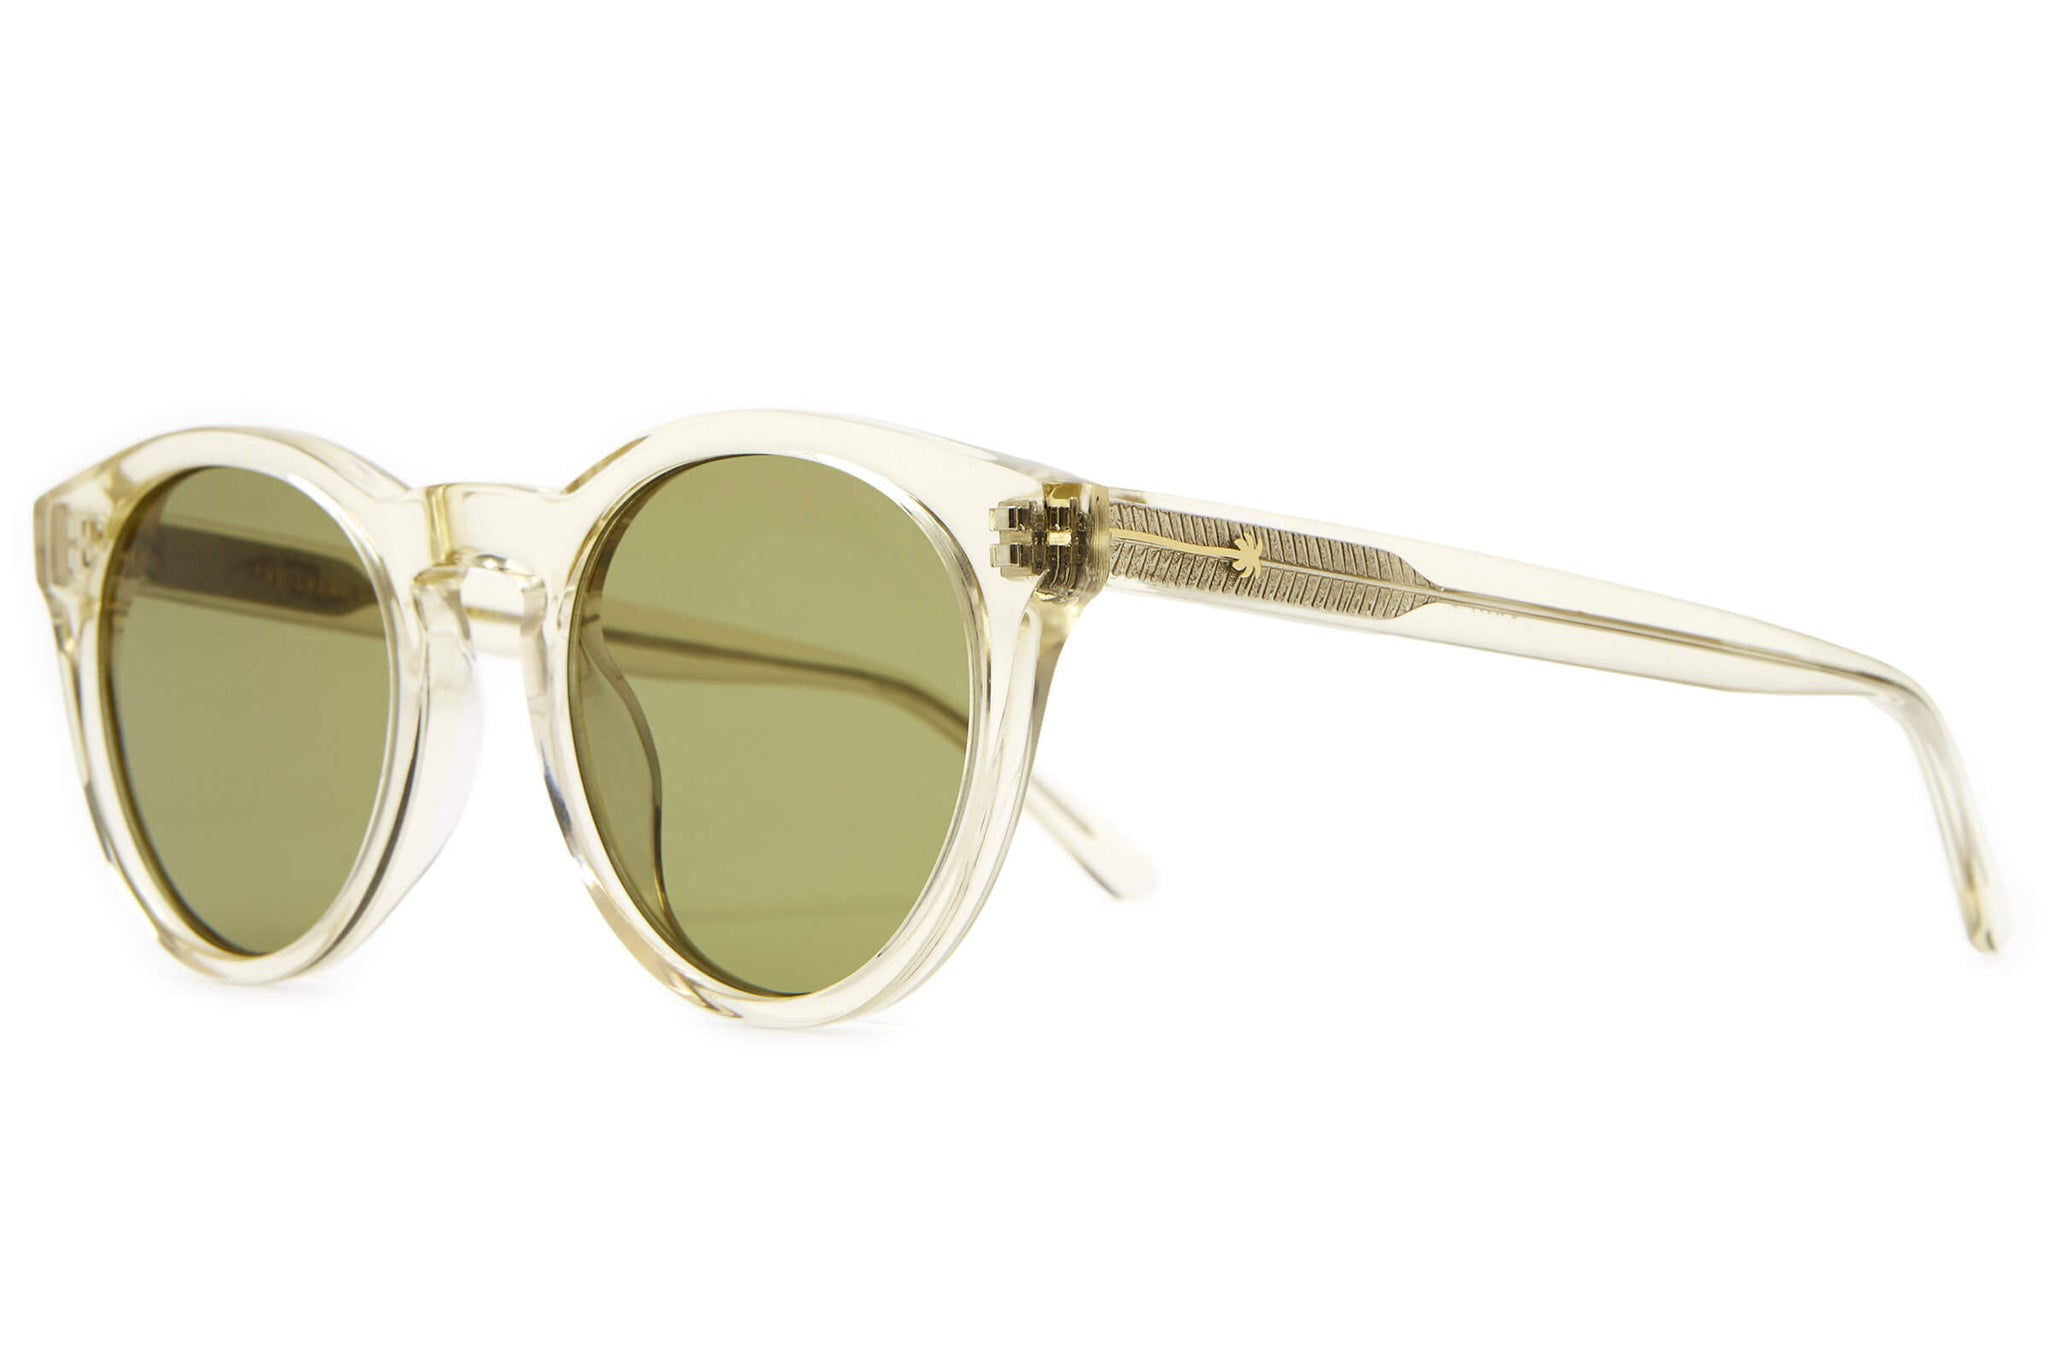 74697fffc Crap® Eyewear | The Shake Appeal Crystal Champagne Round Sunglasses